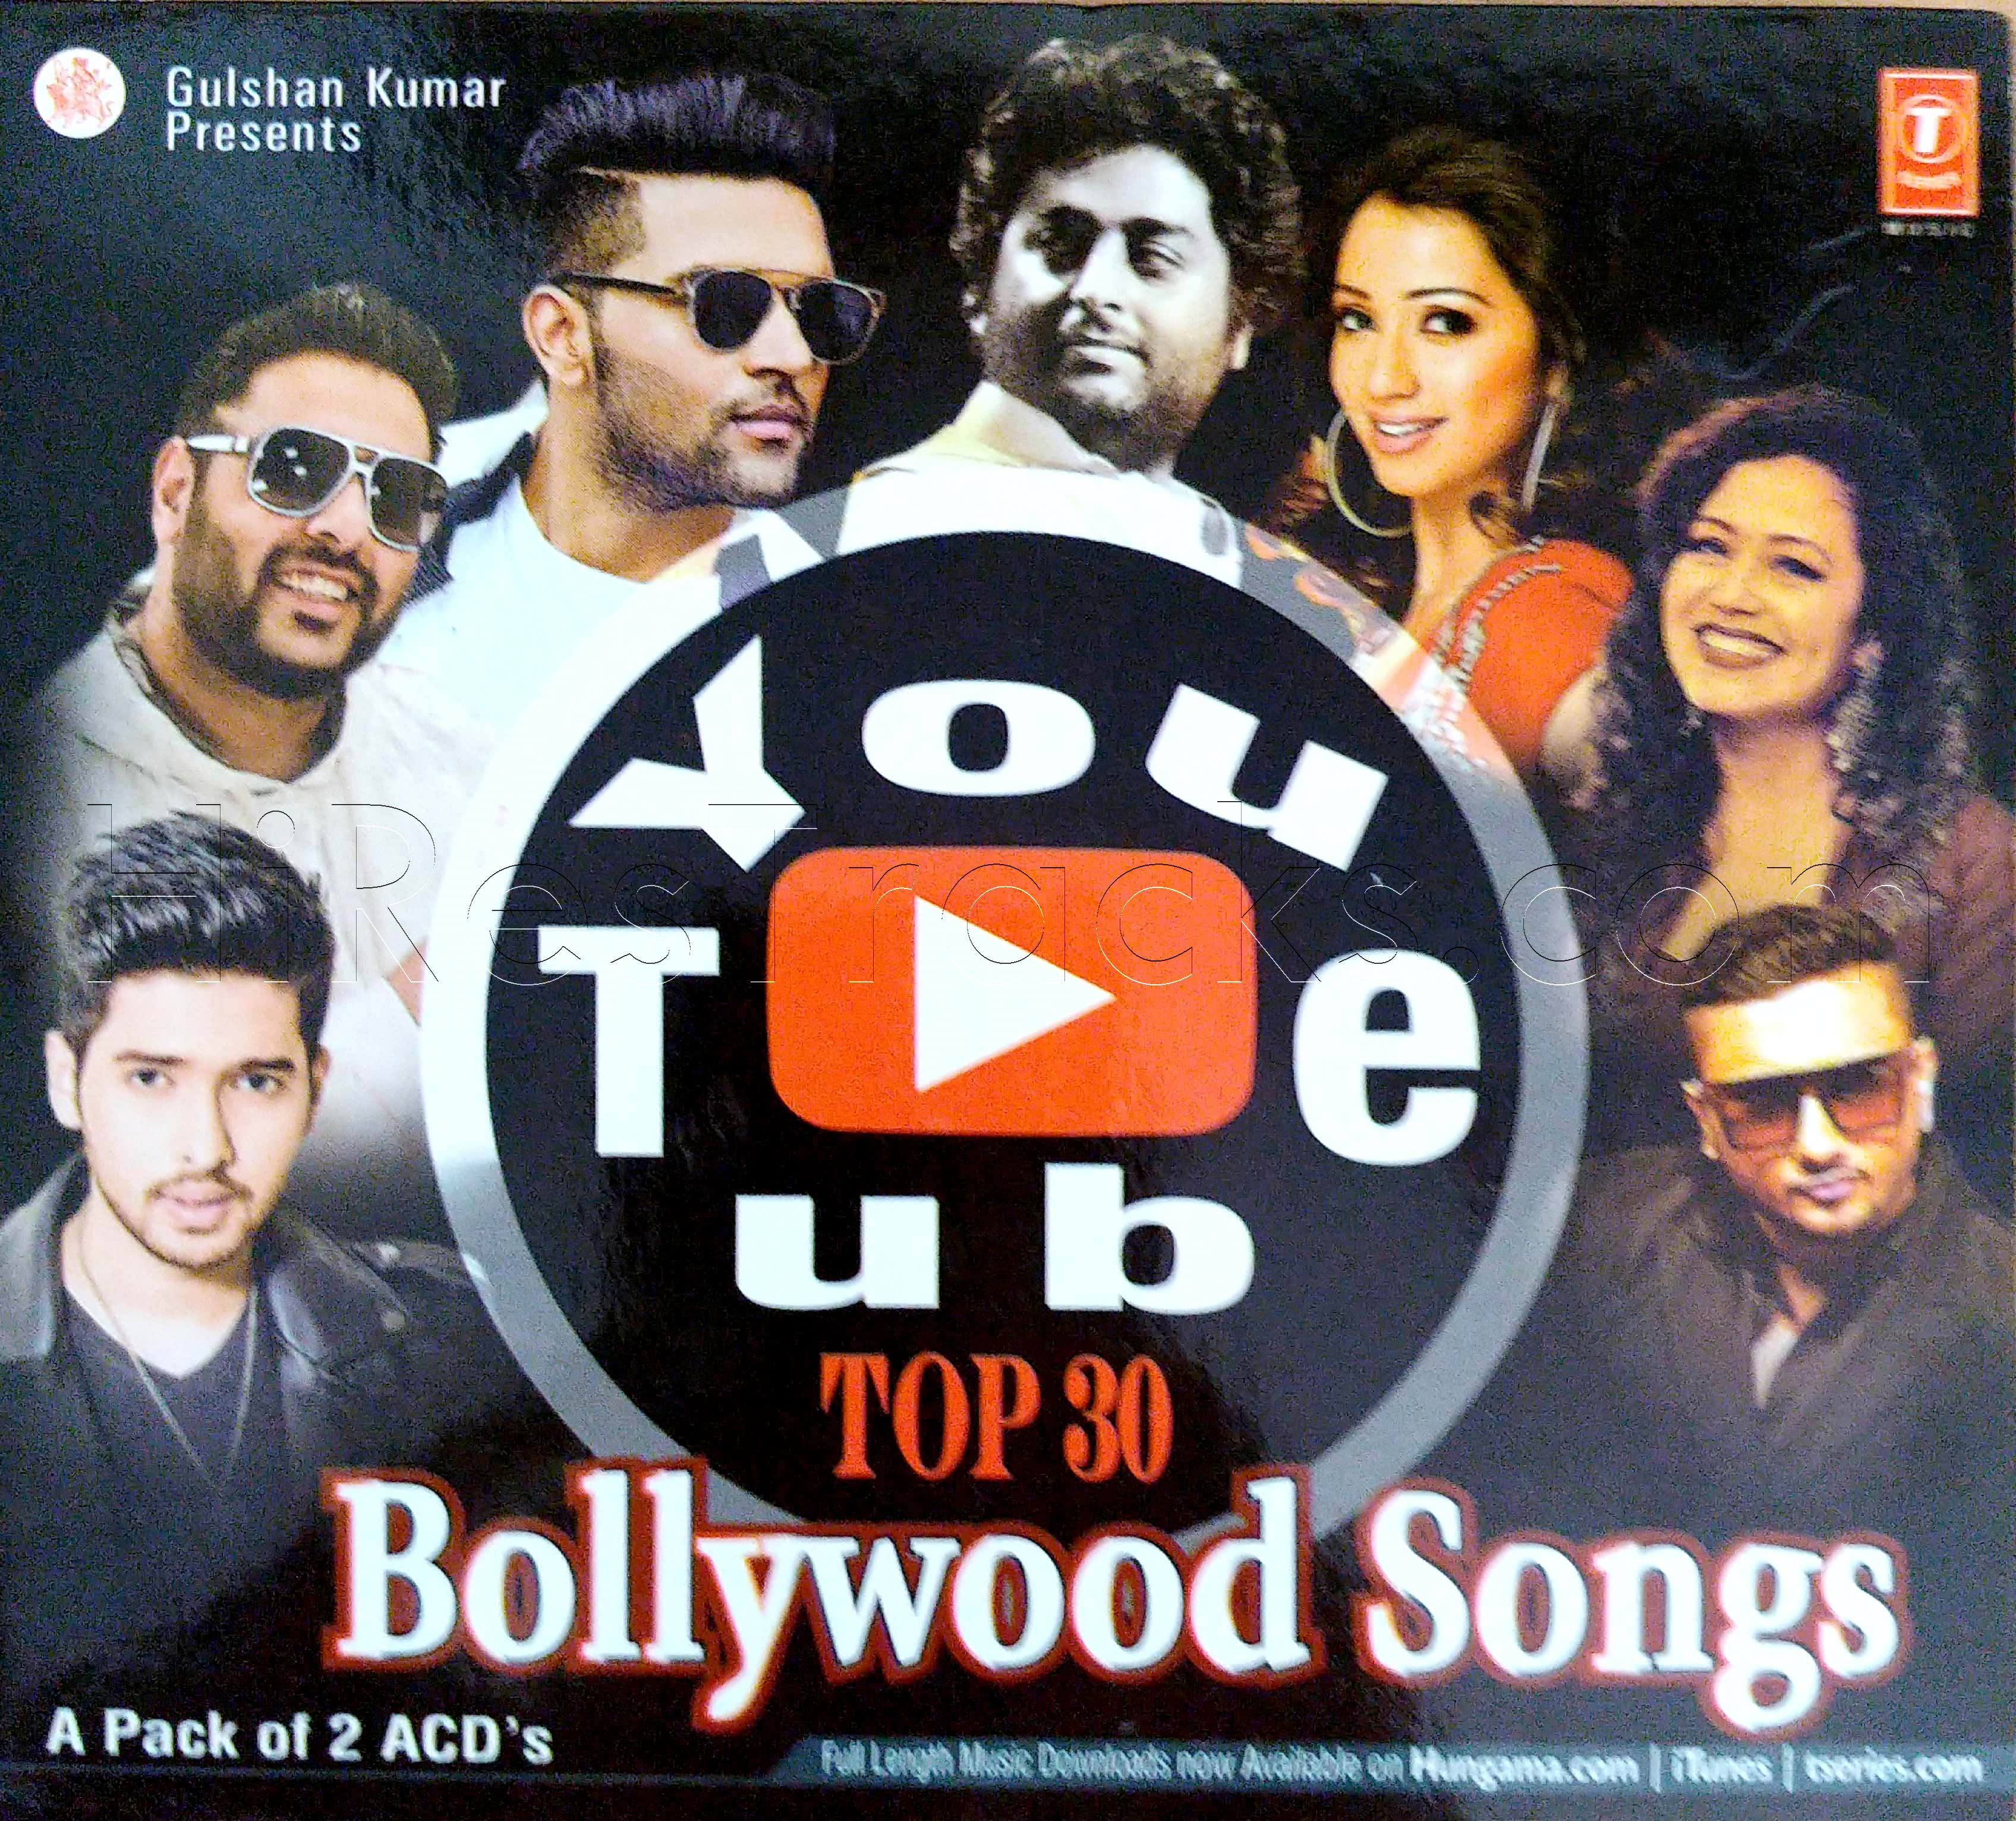 Youtube Top 30 Bollywood Songs (2019) (Various Artists) [2 CDs] [ACD-RIP-WAV]